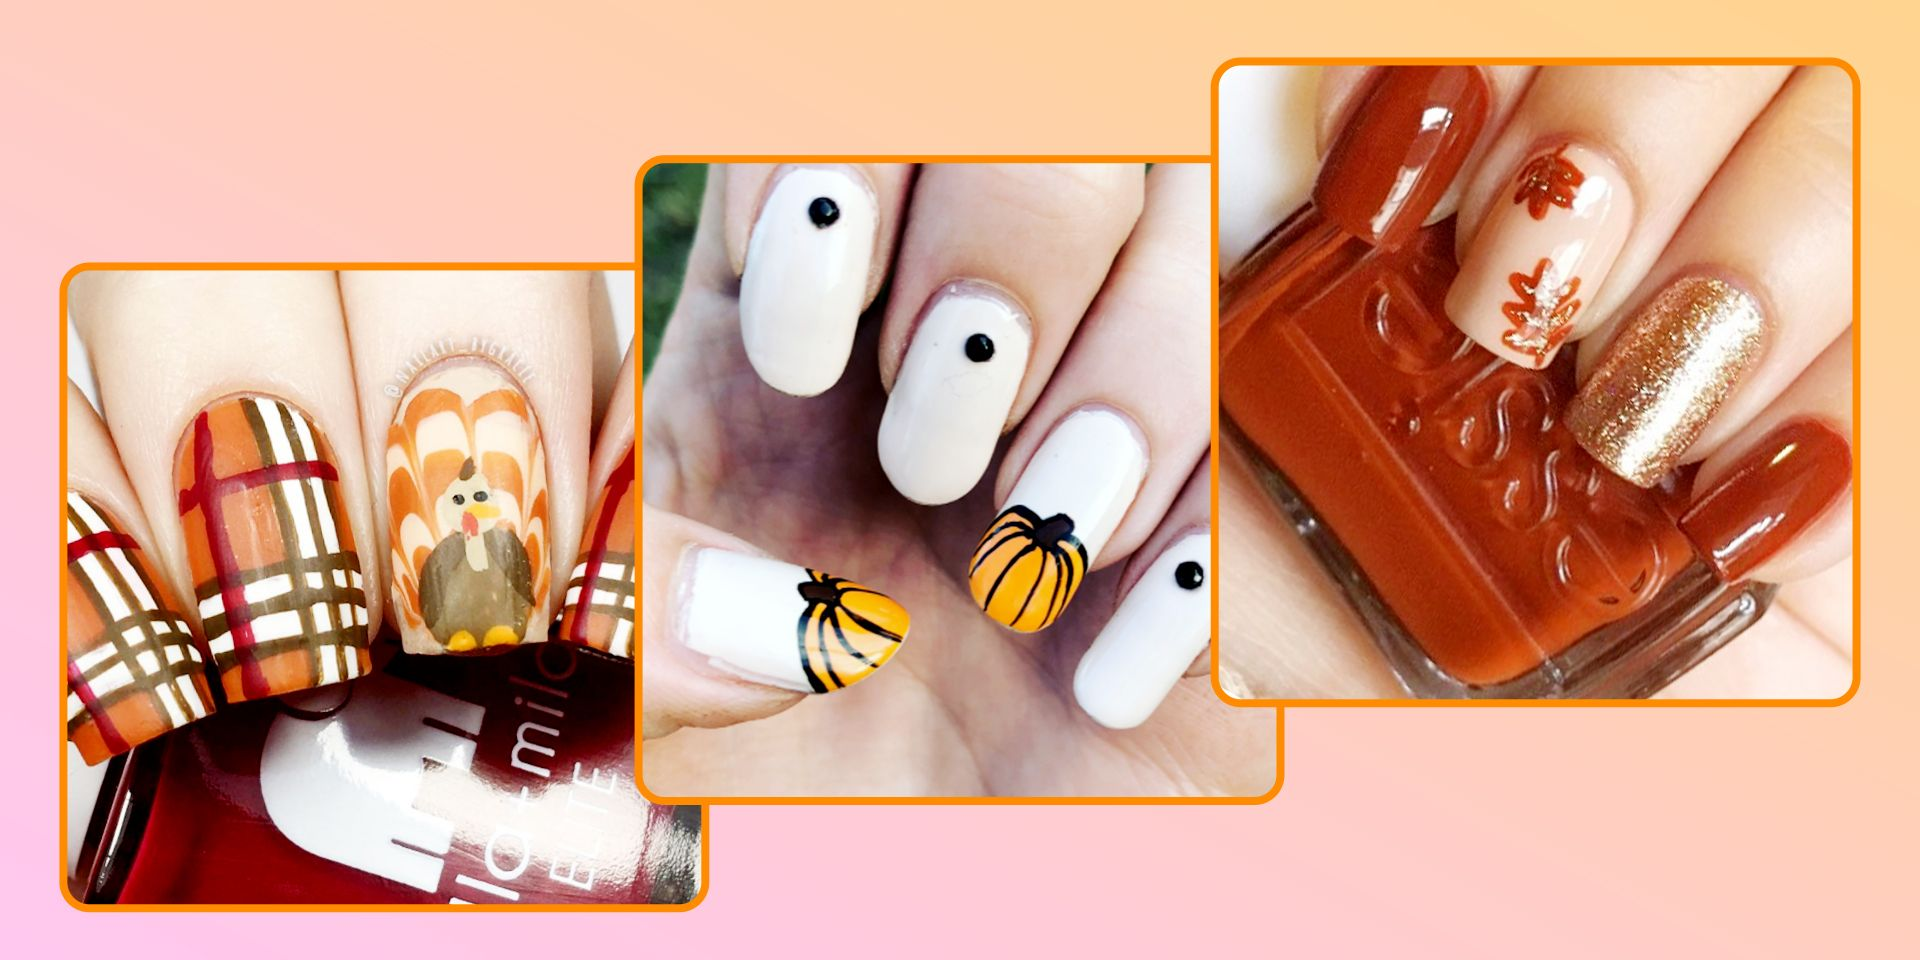 17 Cute Thanksgiving Nail Designs 2018 - Best Nail Art for Turkey Day